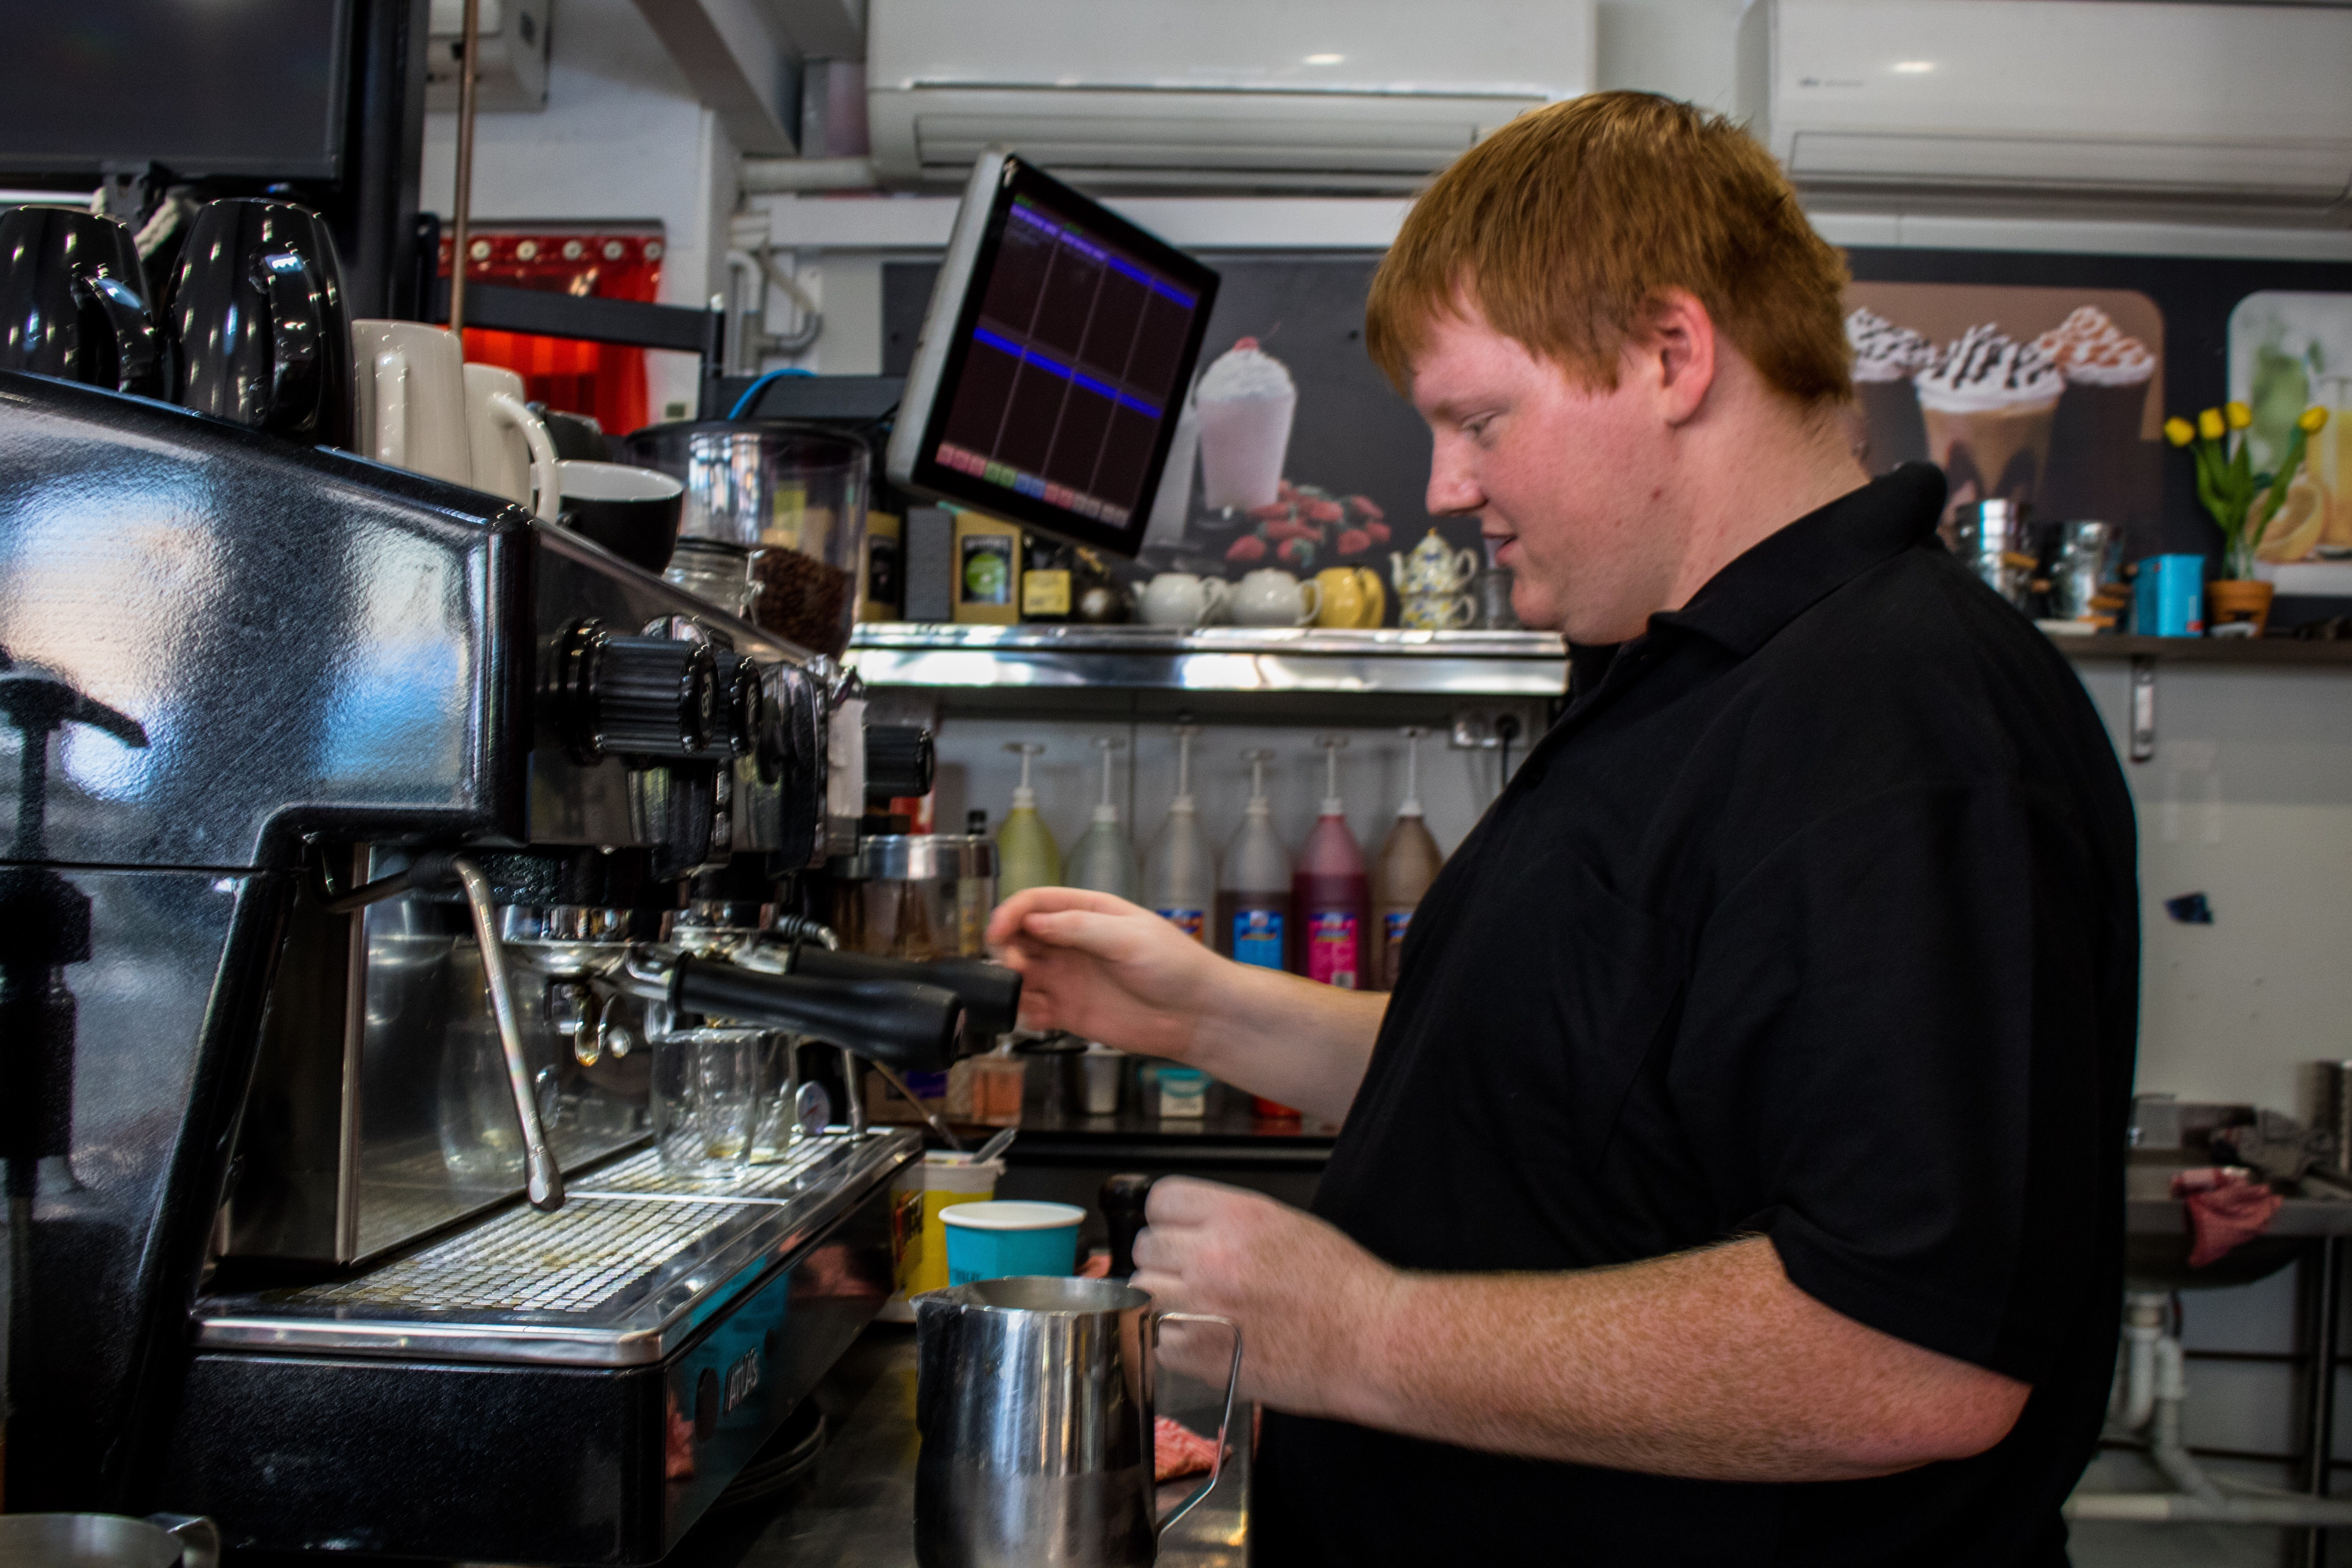 Zach lands his first job out of school at a friendly, local café